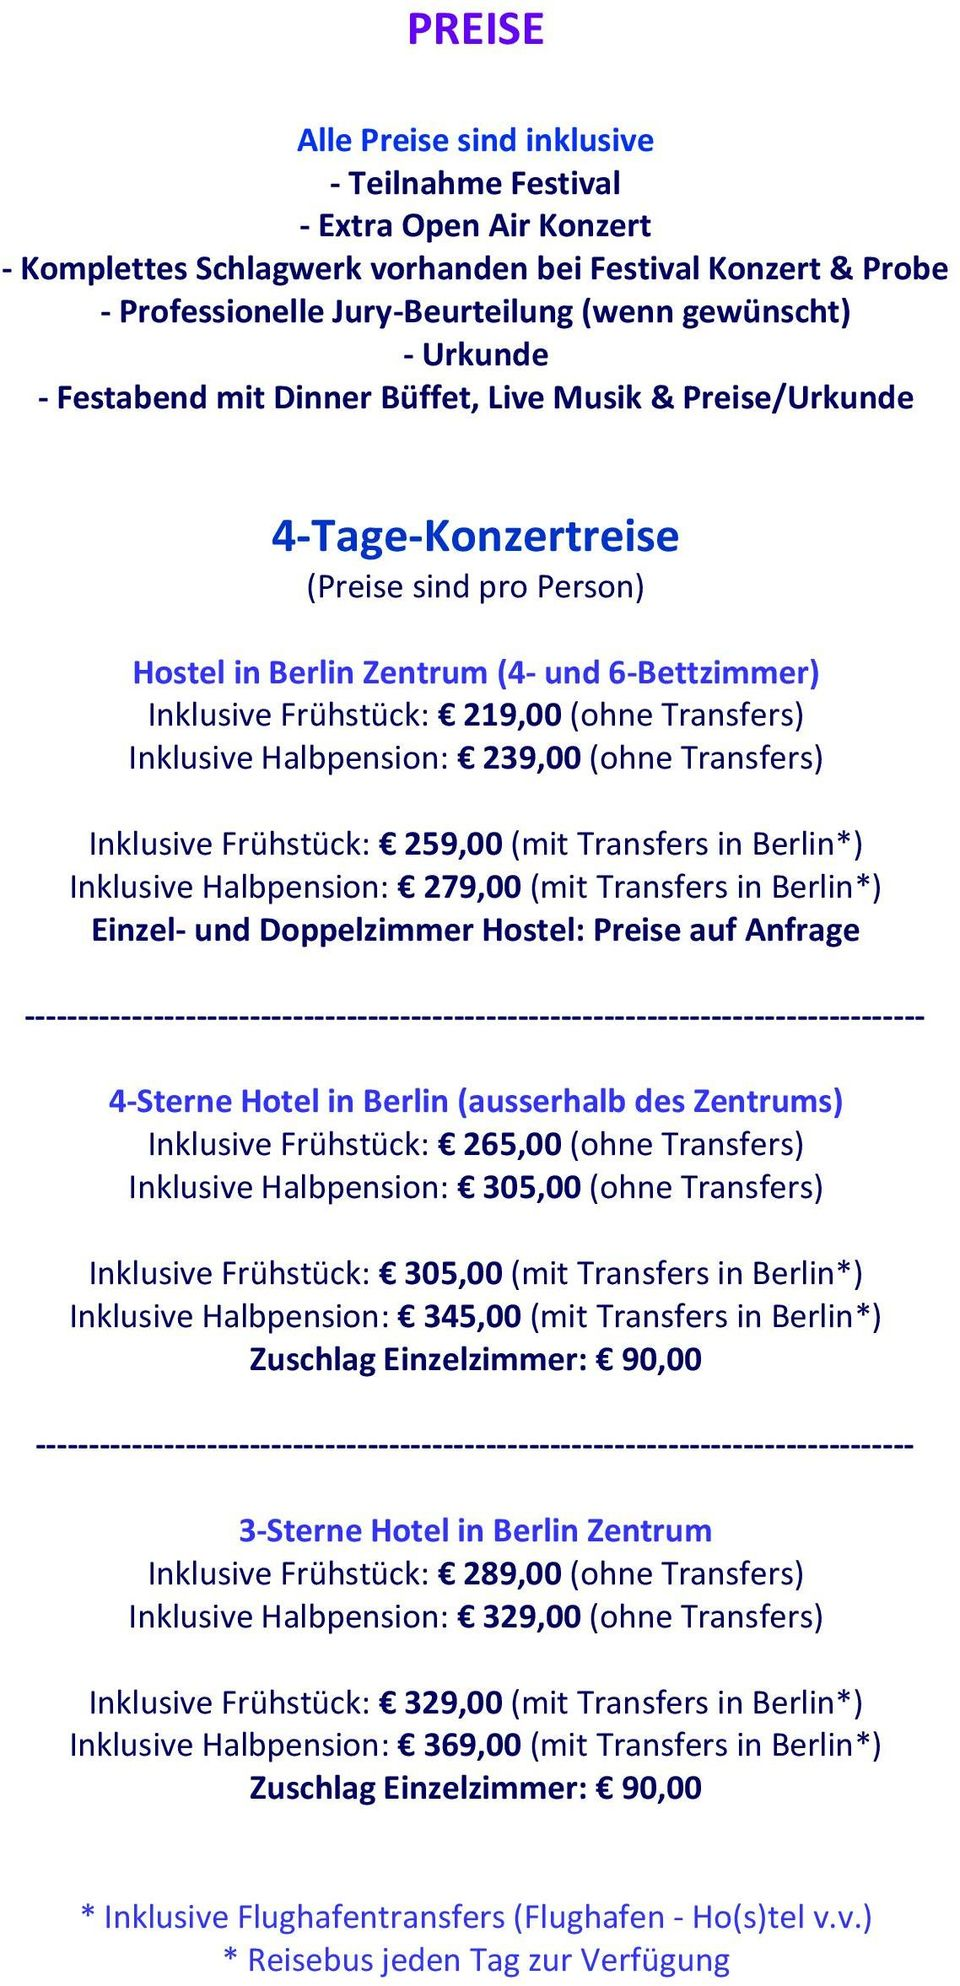 Transfers) Inklusive Halbpension: 239,00 (ohne Transfers) Inklusive Frühstück: 259,00 (mit Transfers in Berlin*) Inklusive Halbpension: 279,00 (mit Transfers in Berlin*) Einzel- und Doppelzimmer